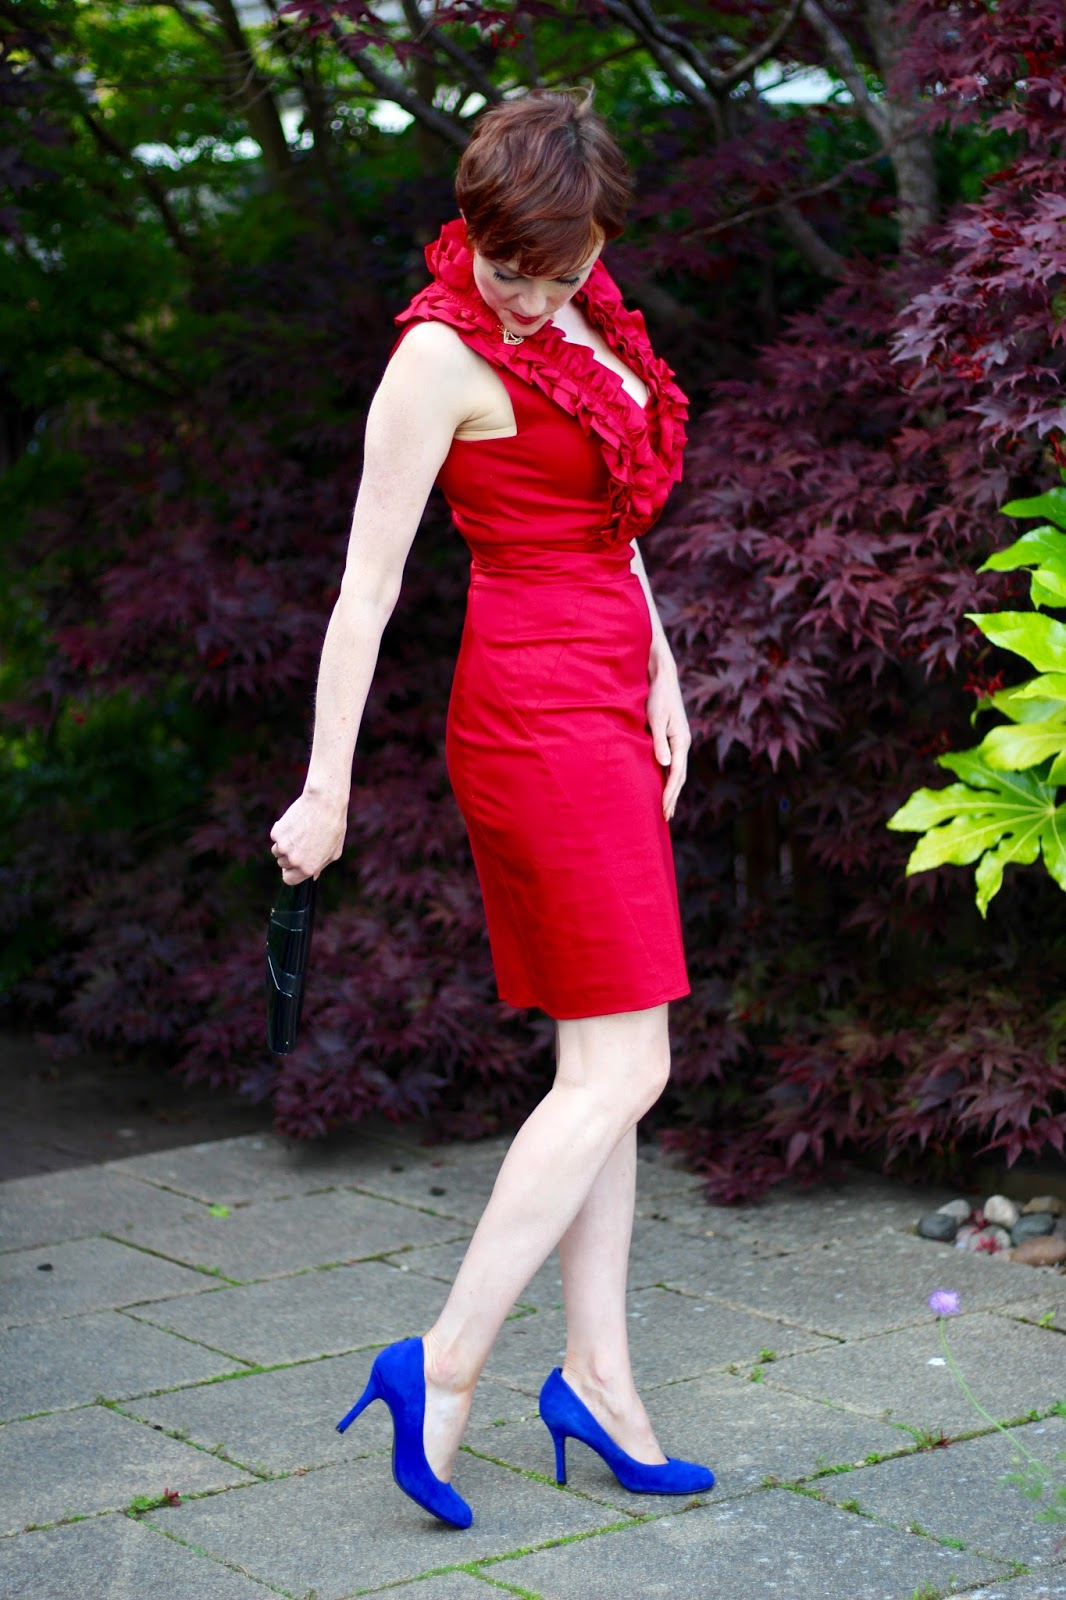 Red Ruffle Ted Baker Dress, Cobalt Suede Heels, Black Vintage Clutch | Self Esteem issues, over 40 |Fake Fabulous